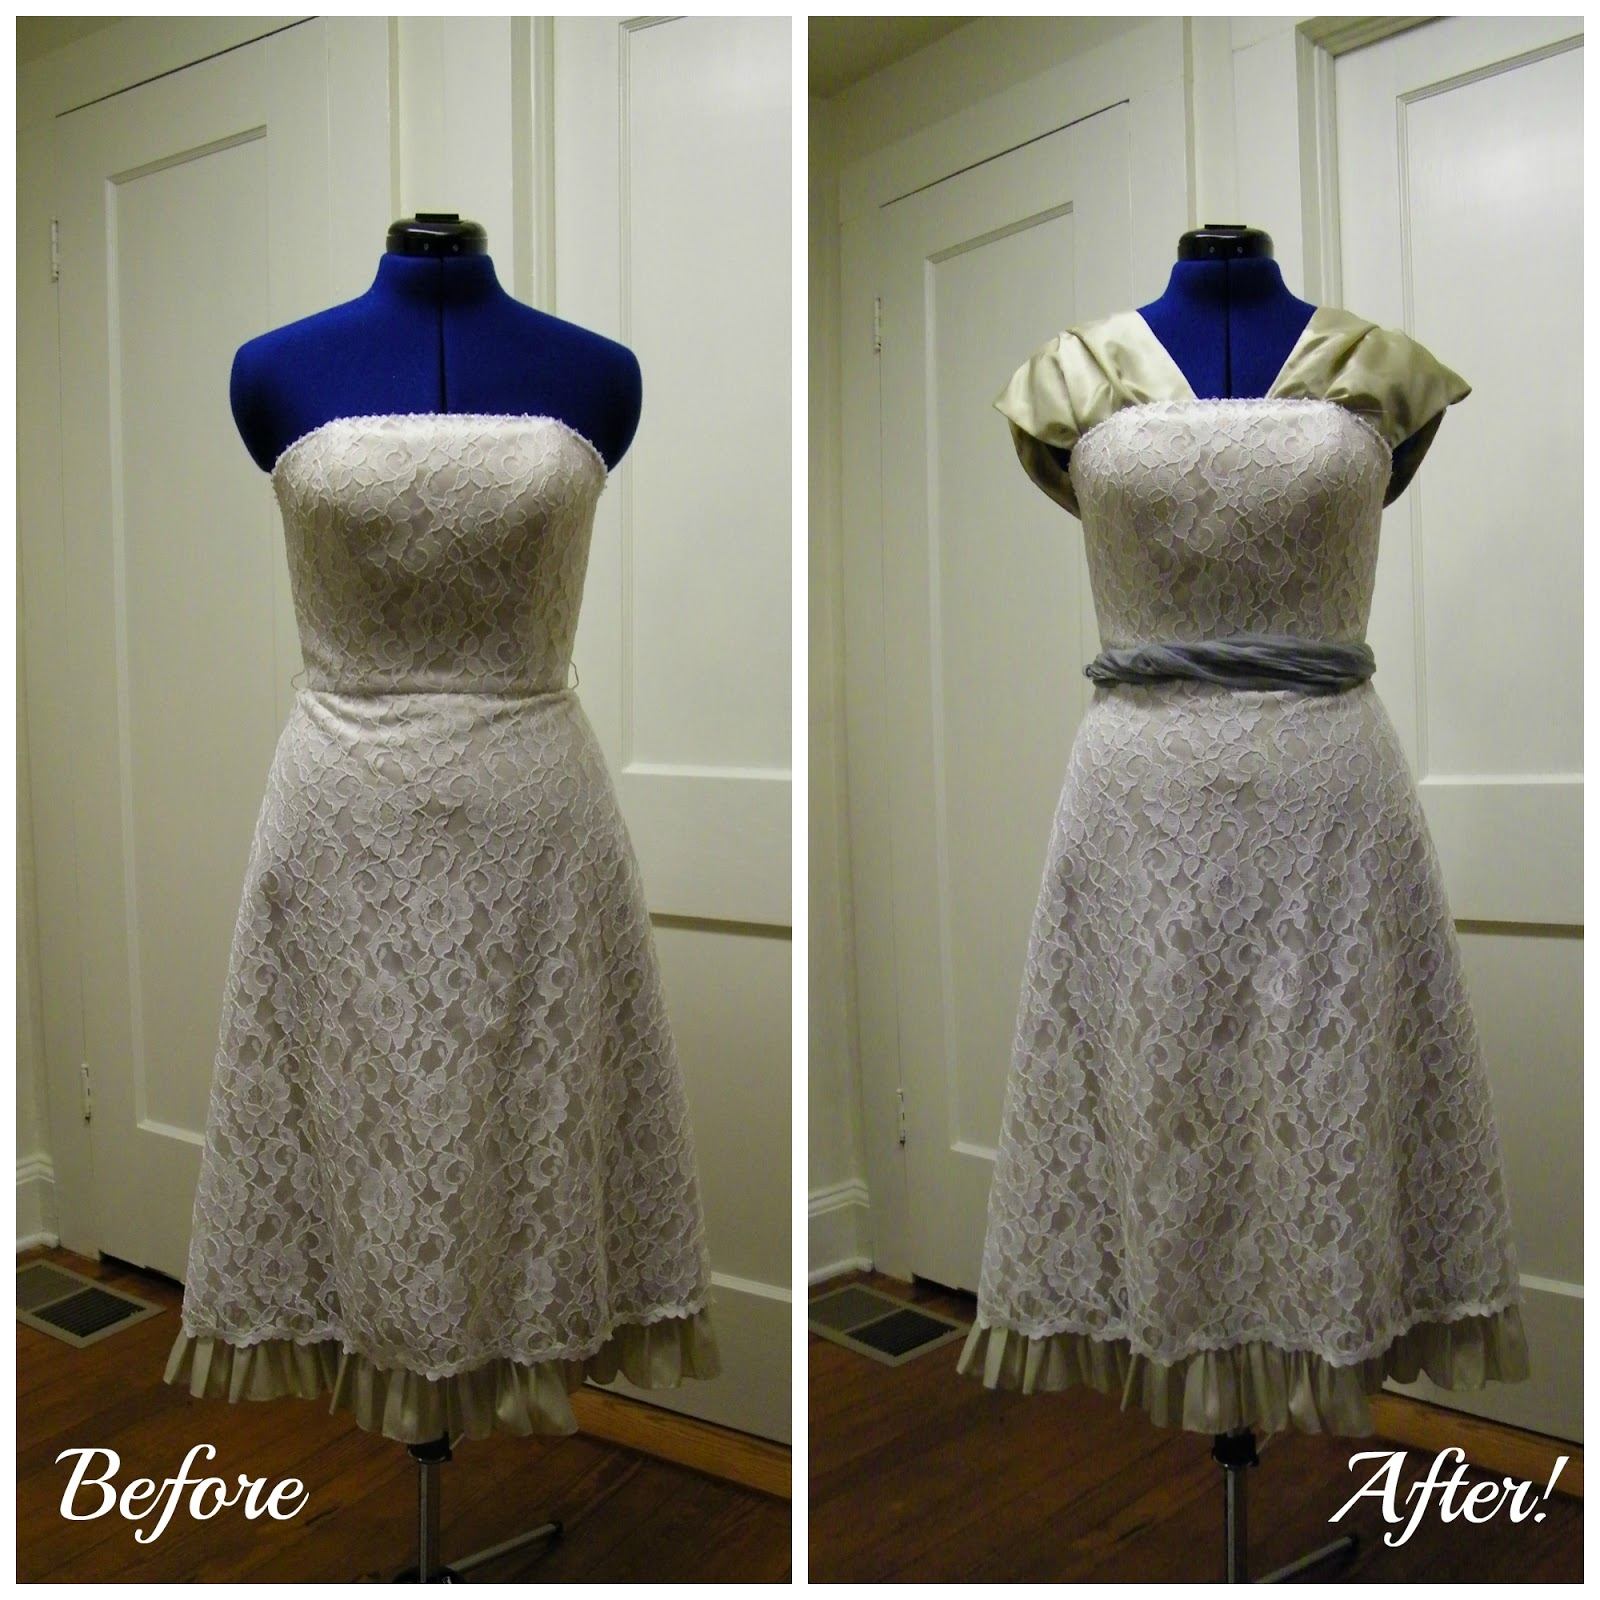 The Touch of Whimsy: Thrift Store Cocktail Dress Refashion!